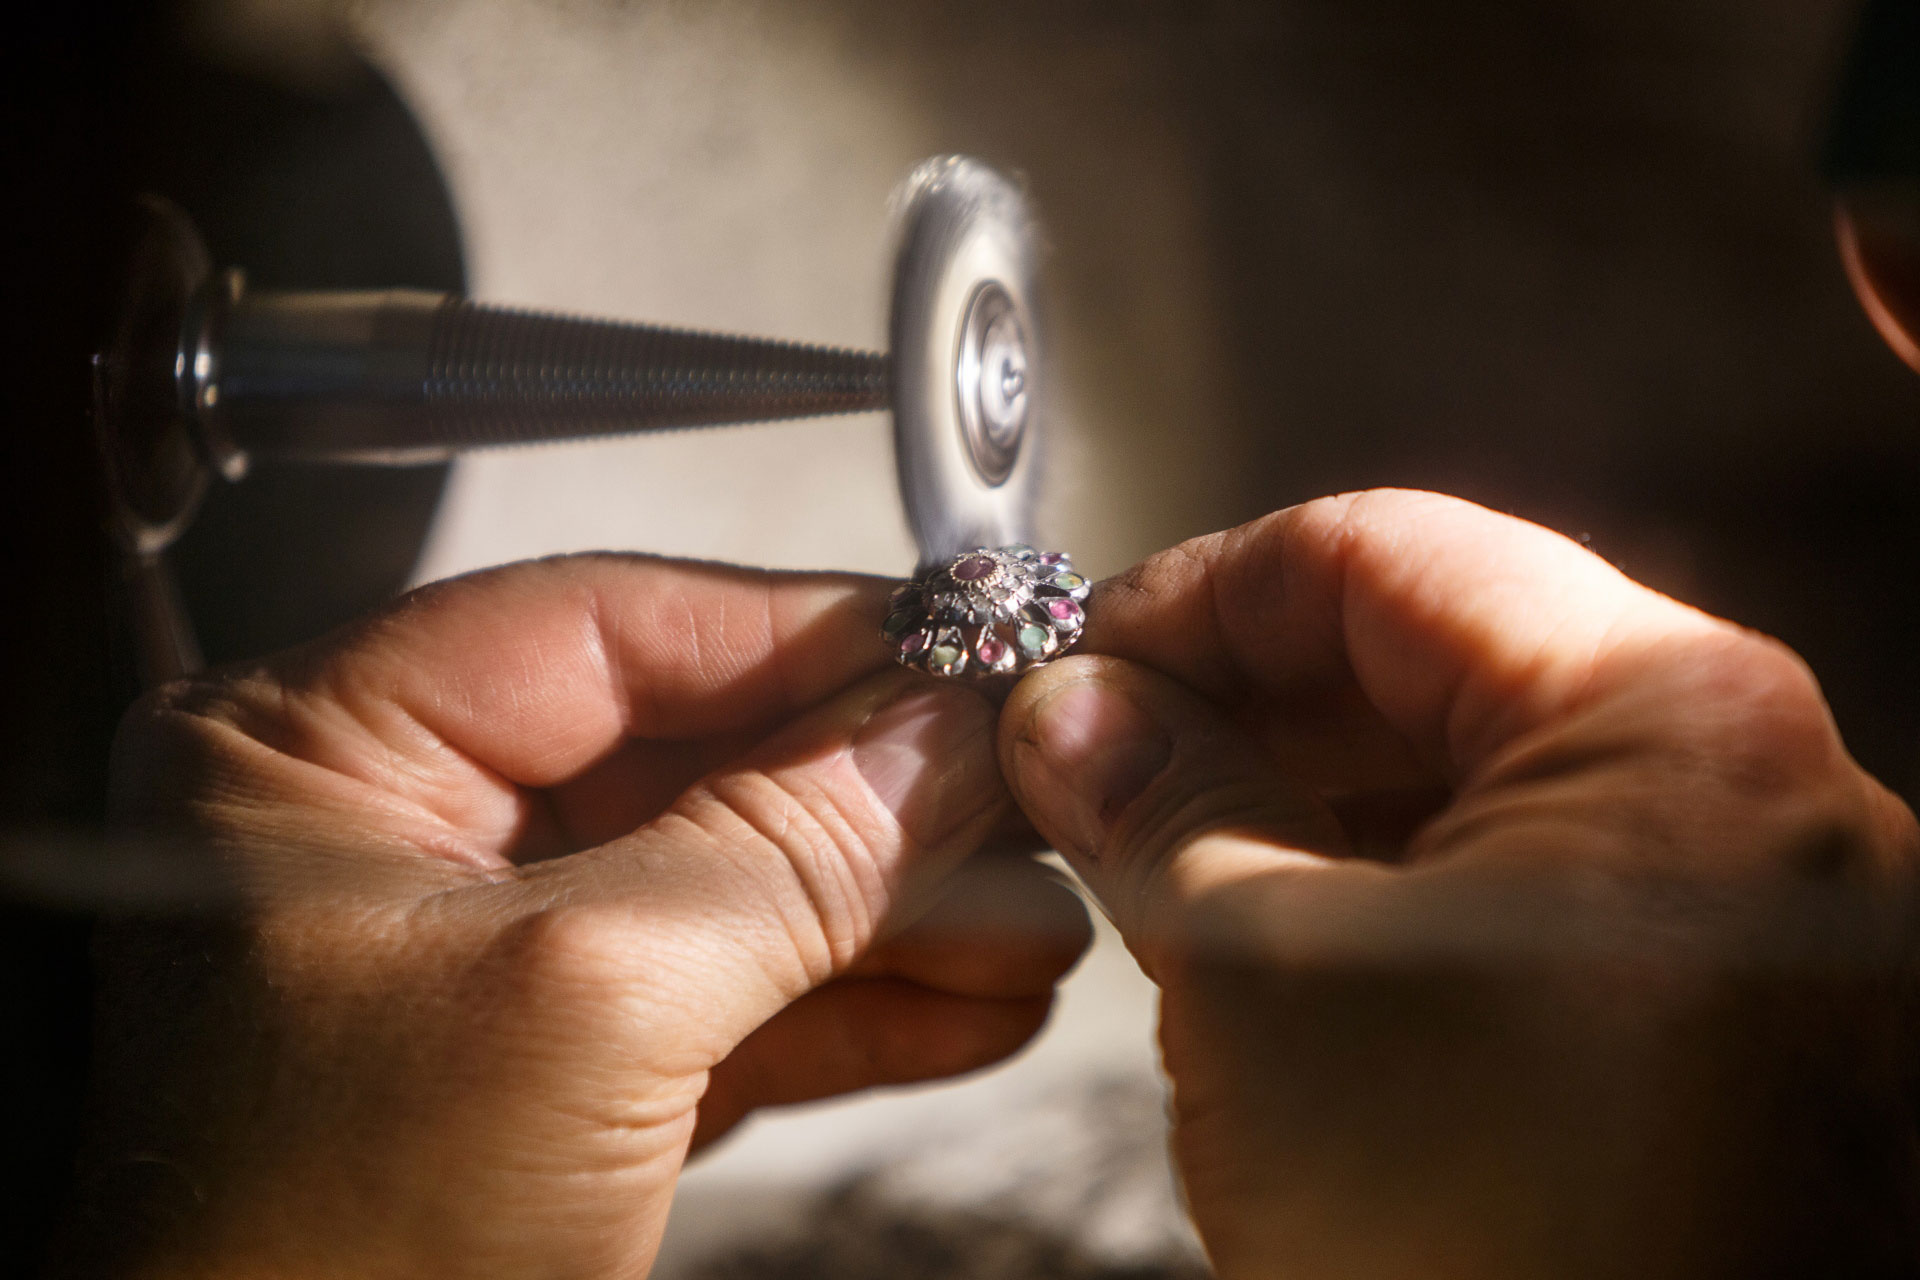 Polishing of jewelry